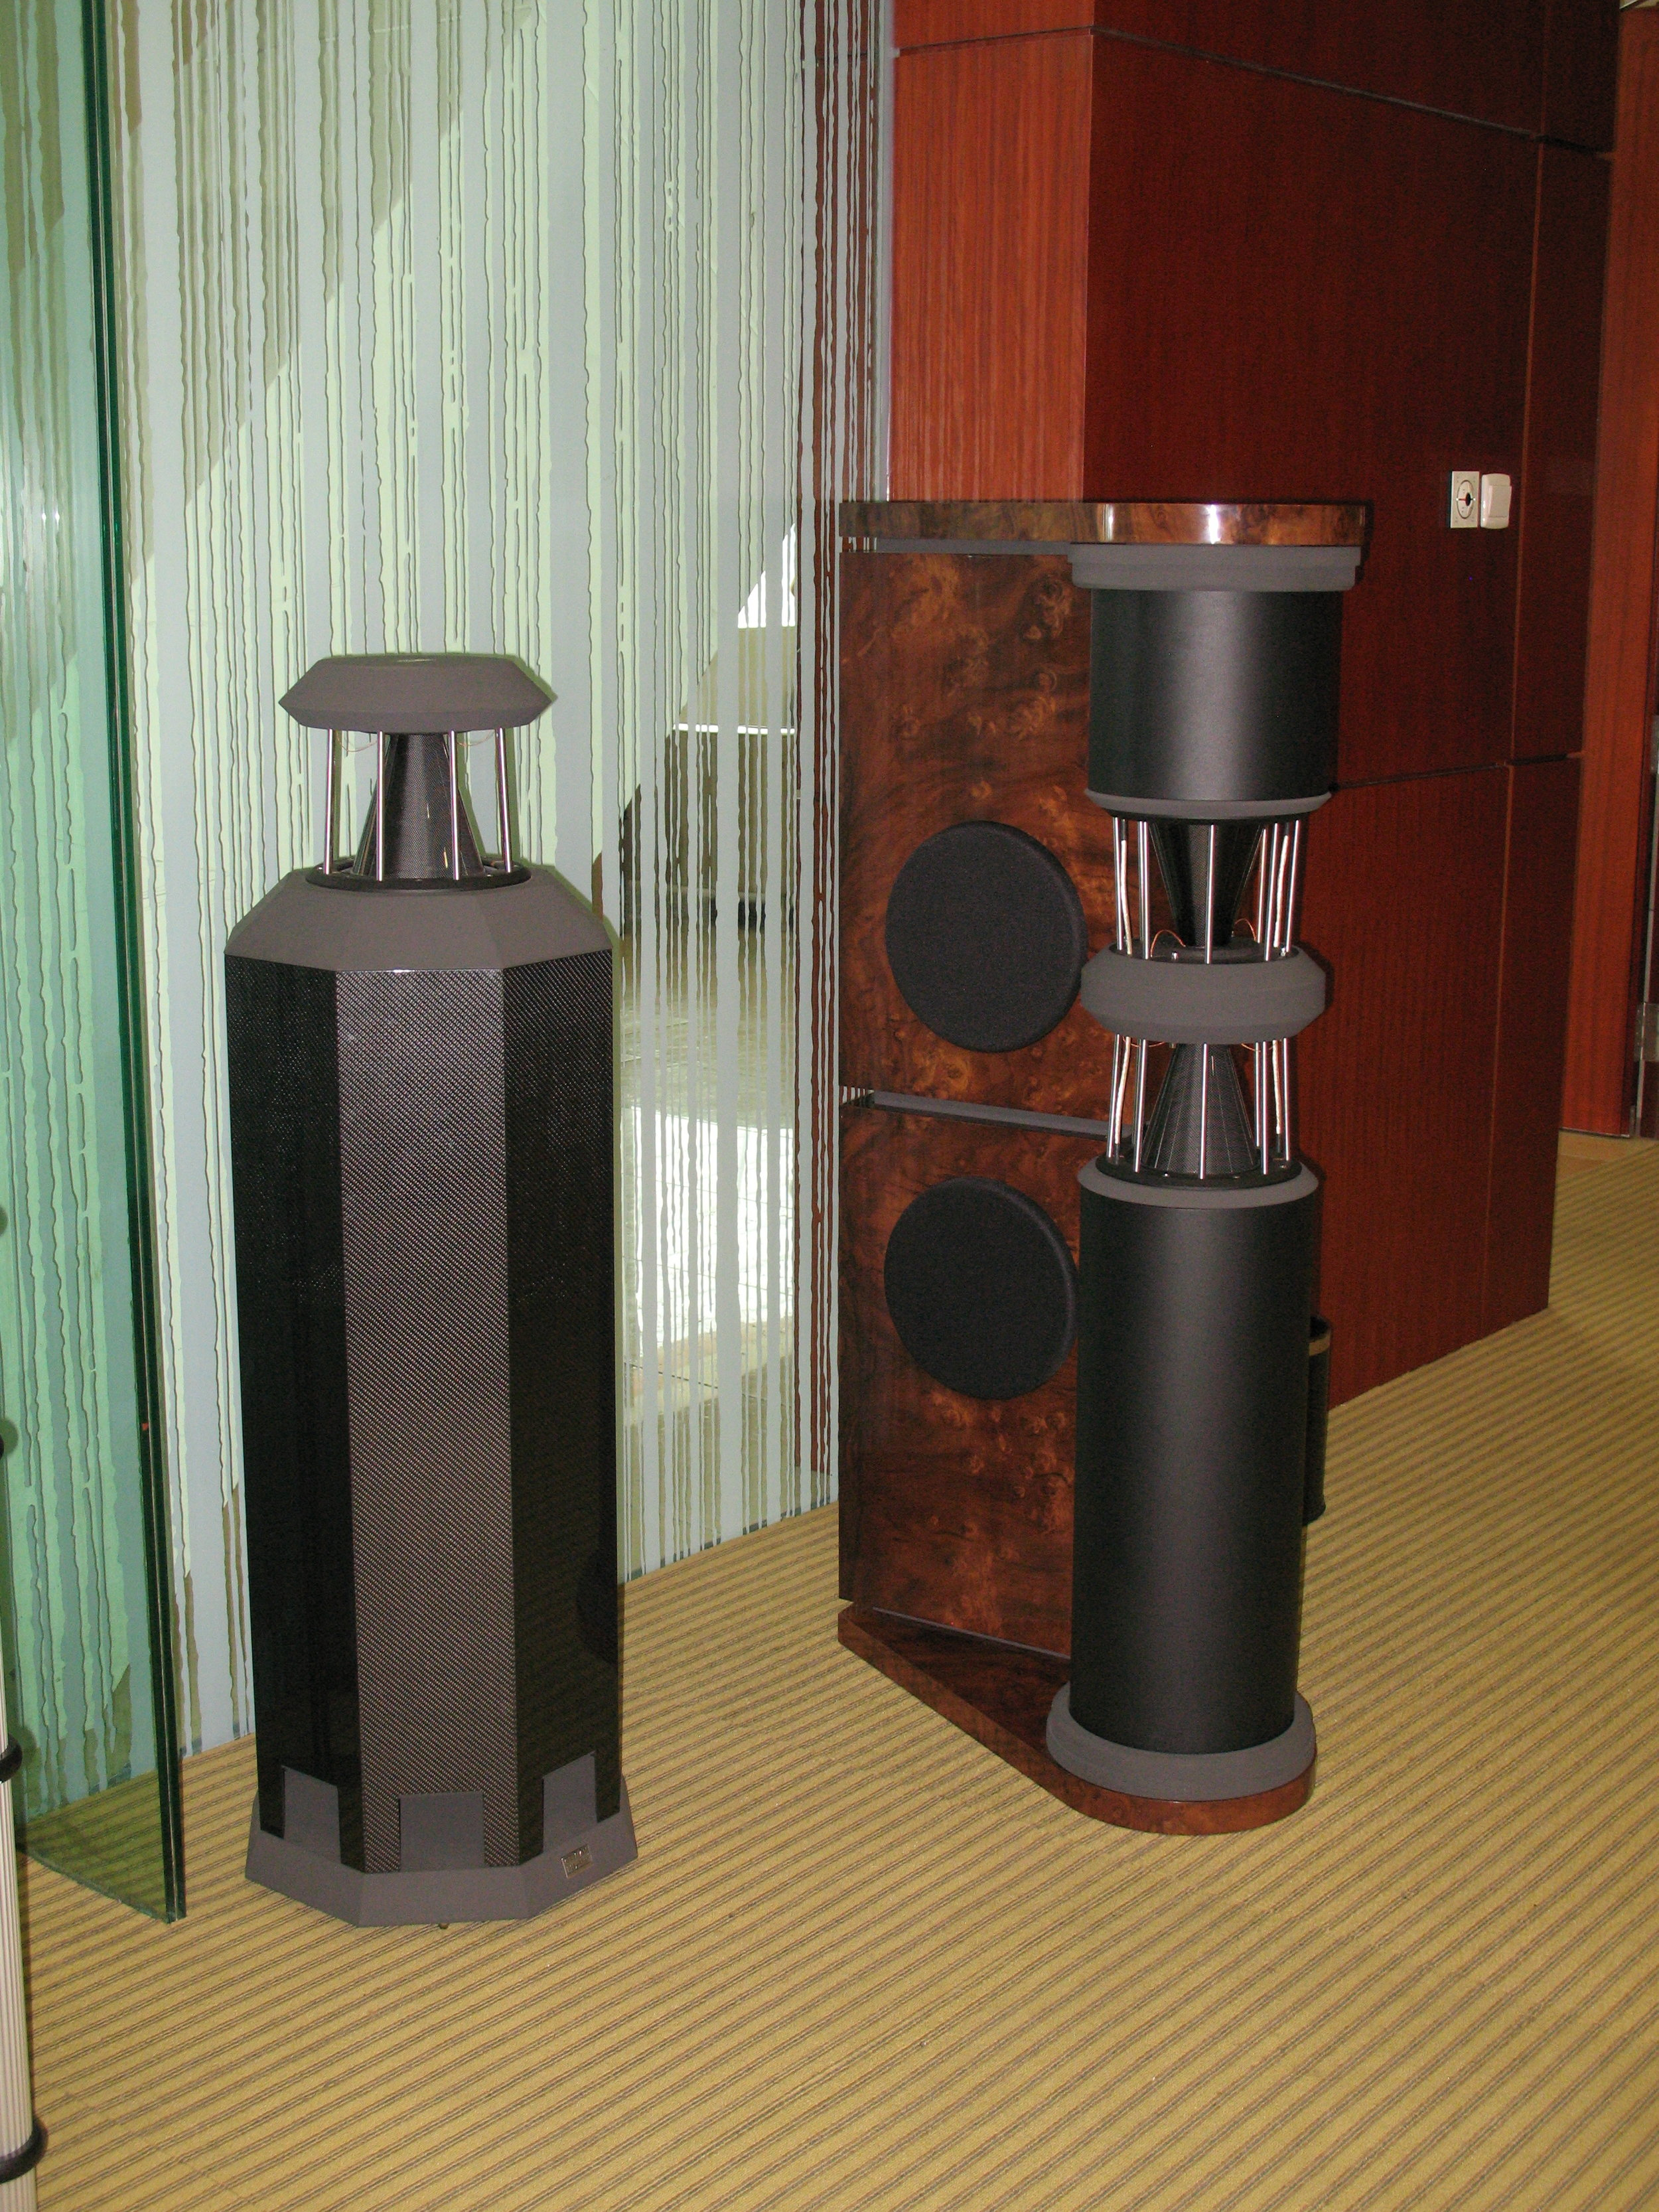 Carbon MK IV and PQS-302  in walnut cluster  high polish | Guangzhou Show 2009, China